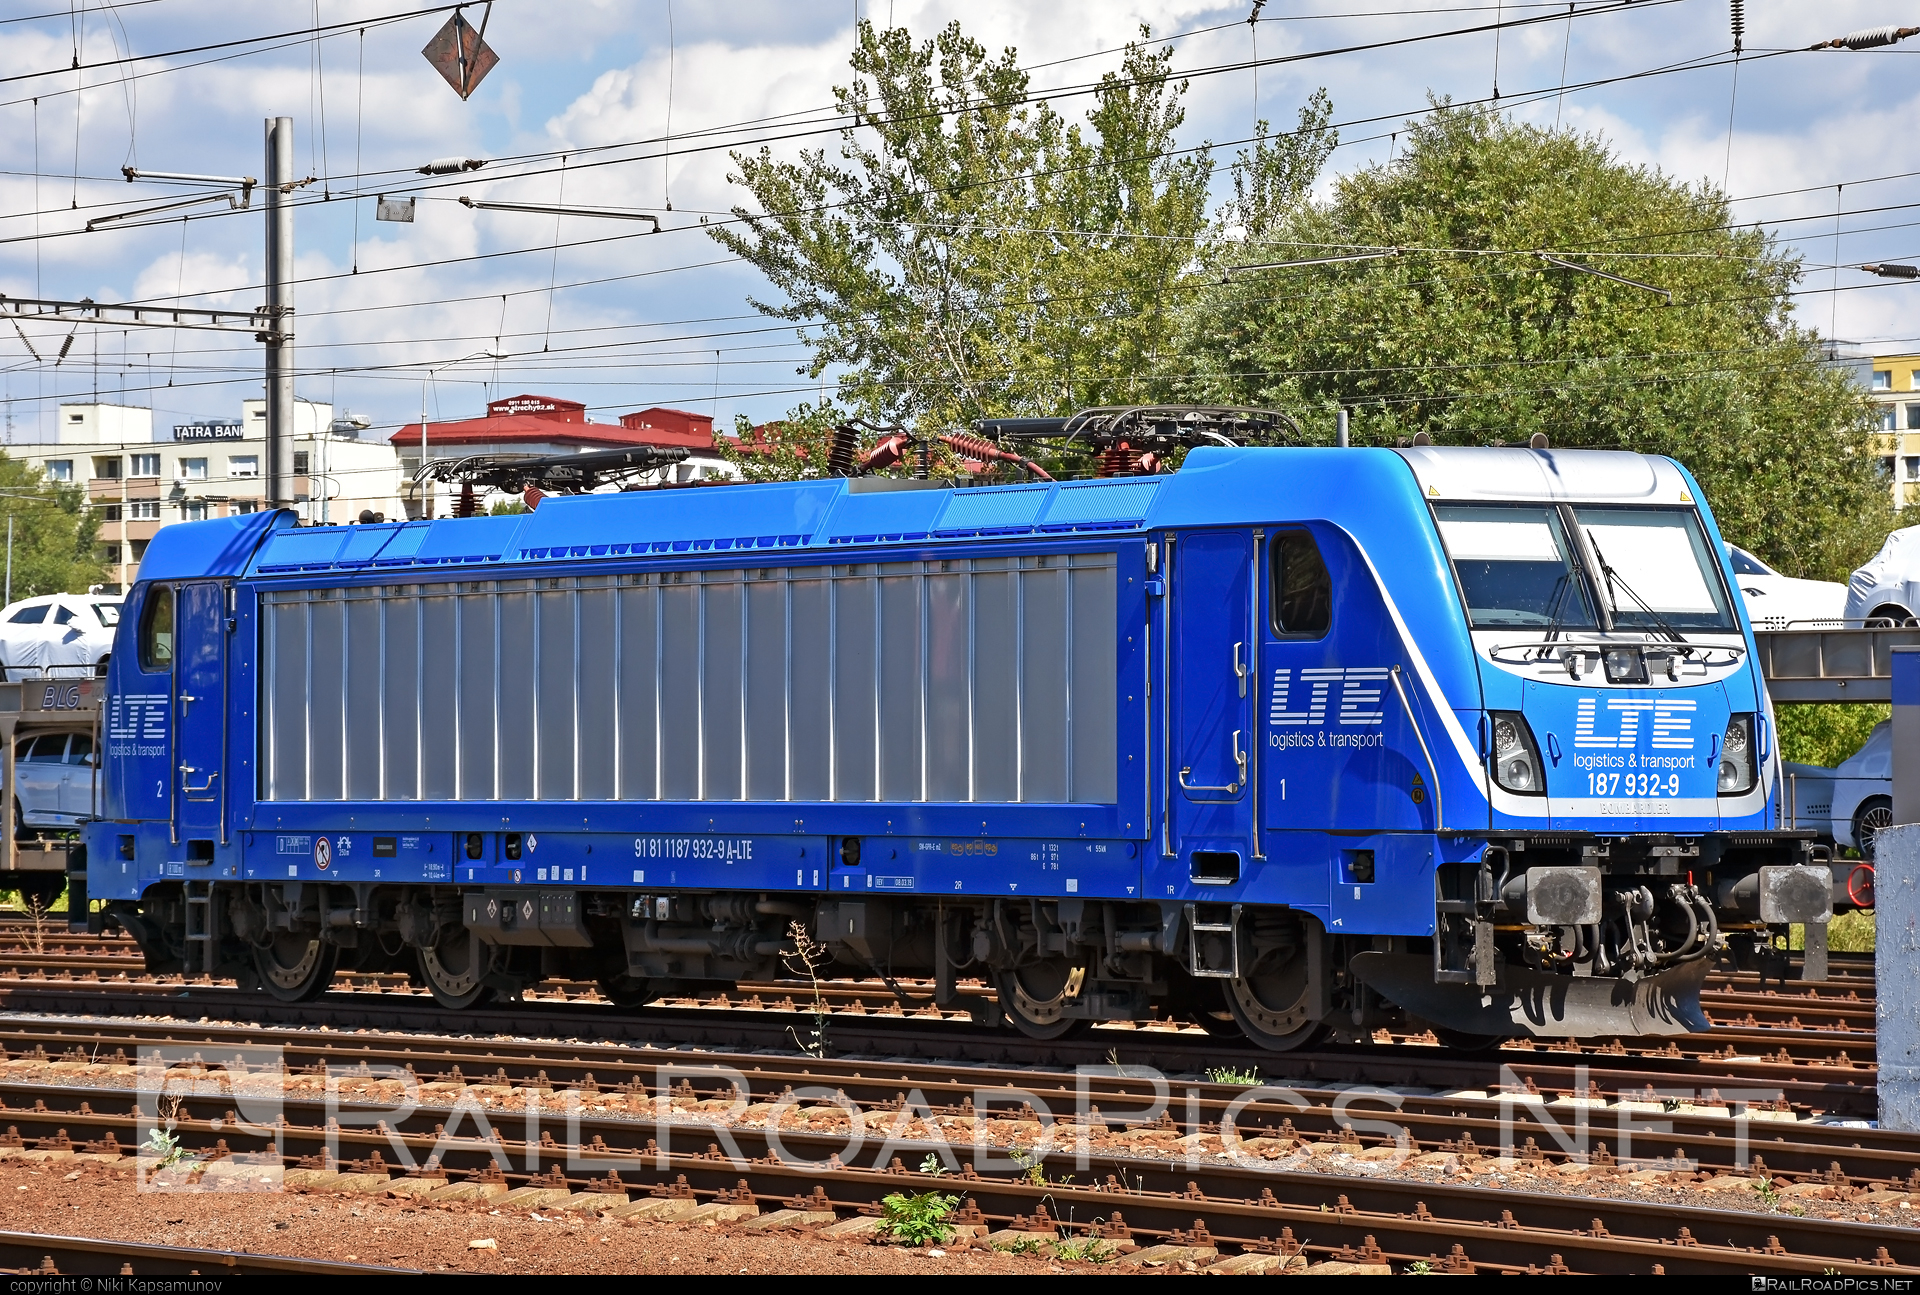 Bombardier TRAXX F140 AC3 - 187 932-9 operated by LTE Logistik und Transport GmbH #bombardier #bombardiertraxx #lte #ltelogistikundtransport #ltelogistikundtransportgmbh #traxx #traxxf140 #traxxf140ac #traxxf140ac3